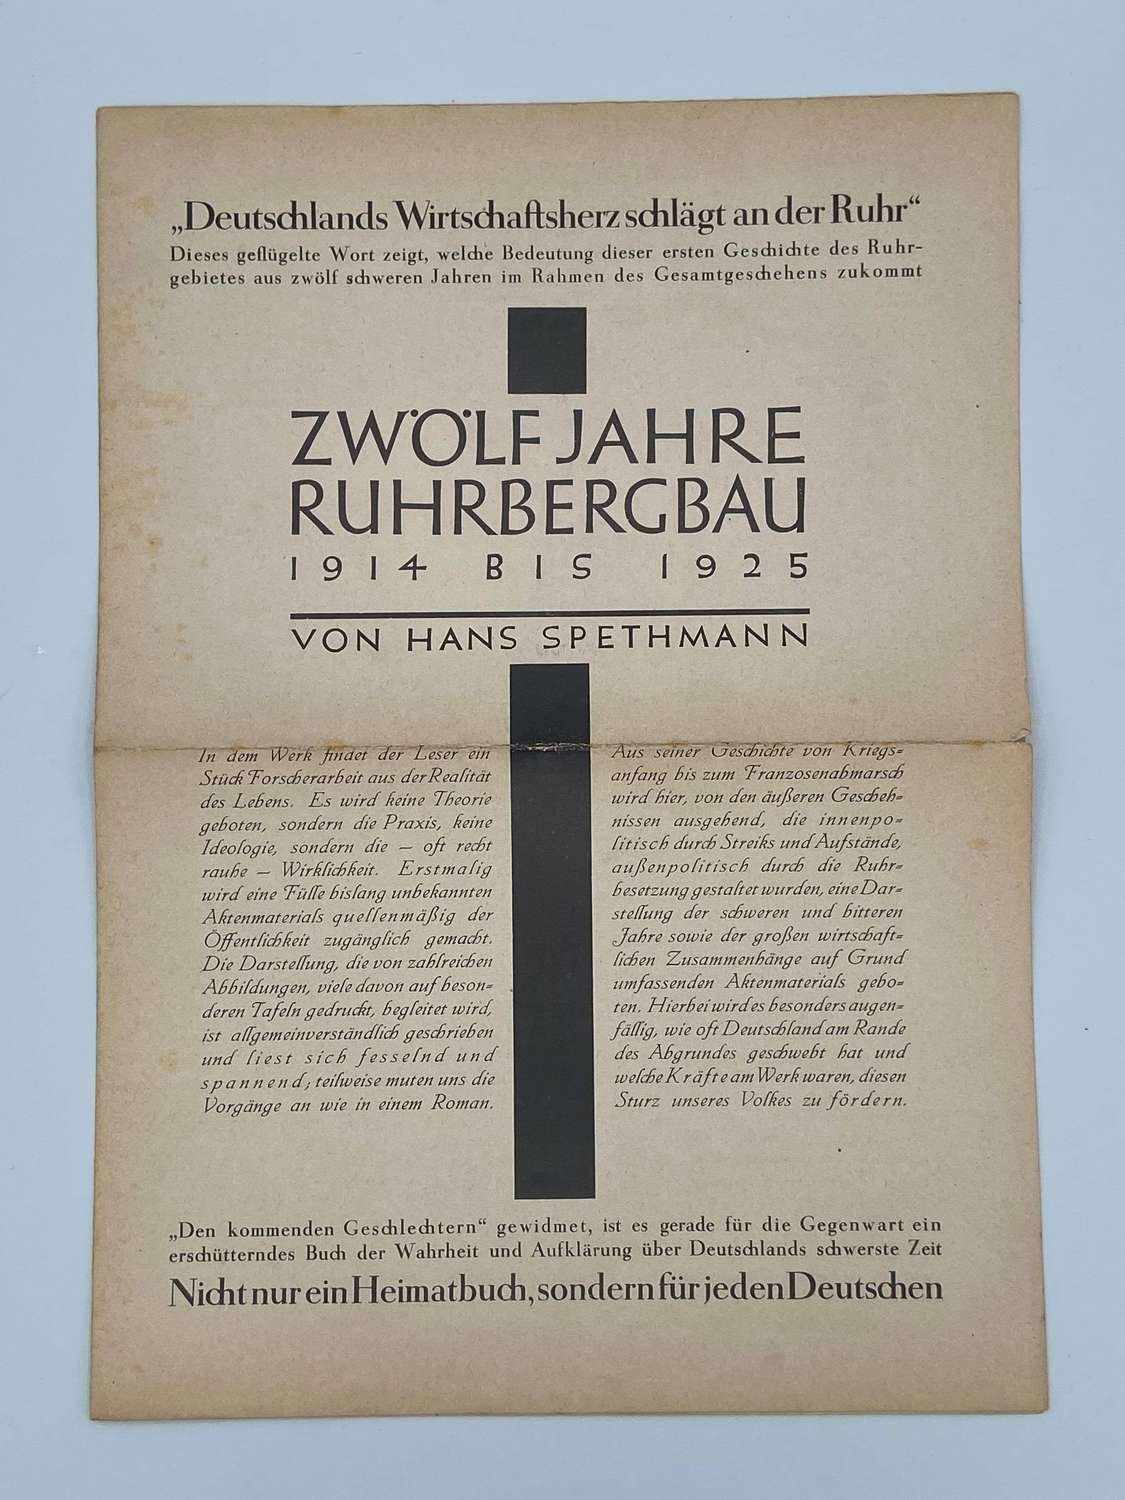 WW2 German Leaflet Campaigning Against Occupation Of The Ruhr 1923-25